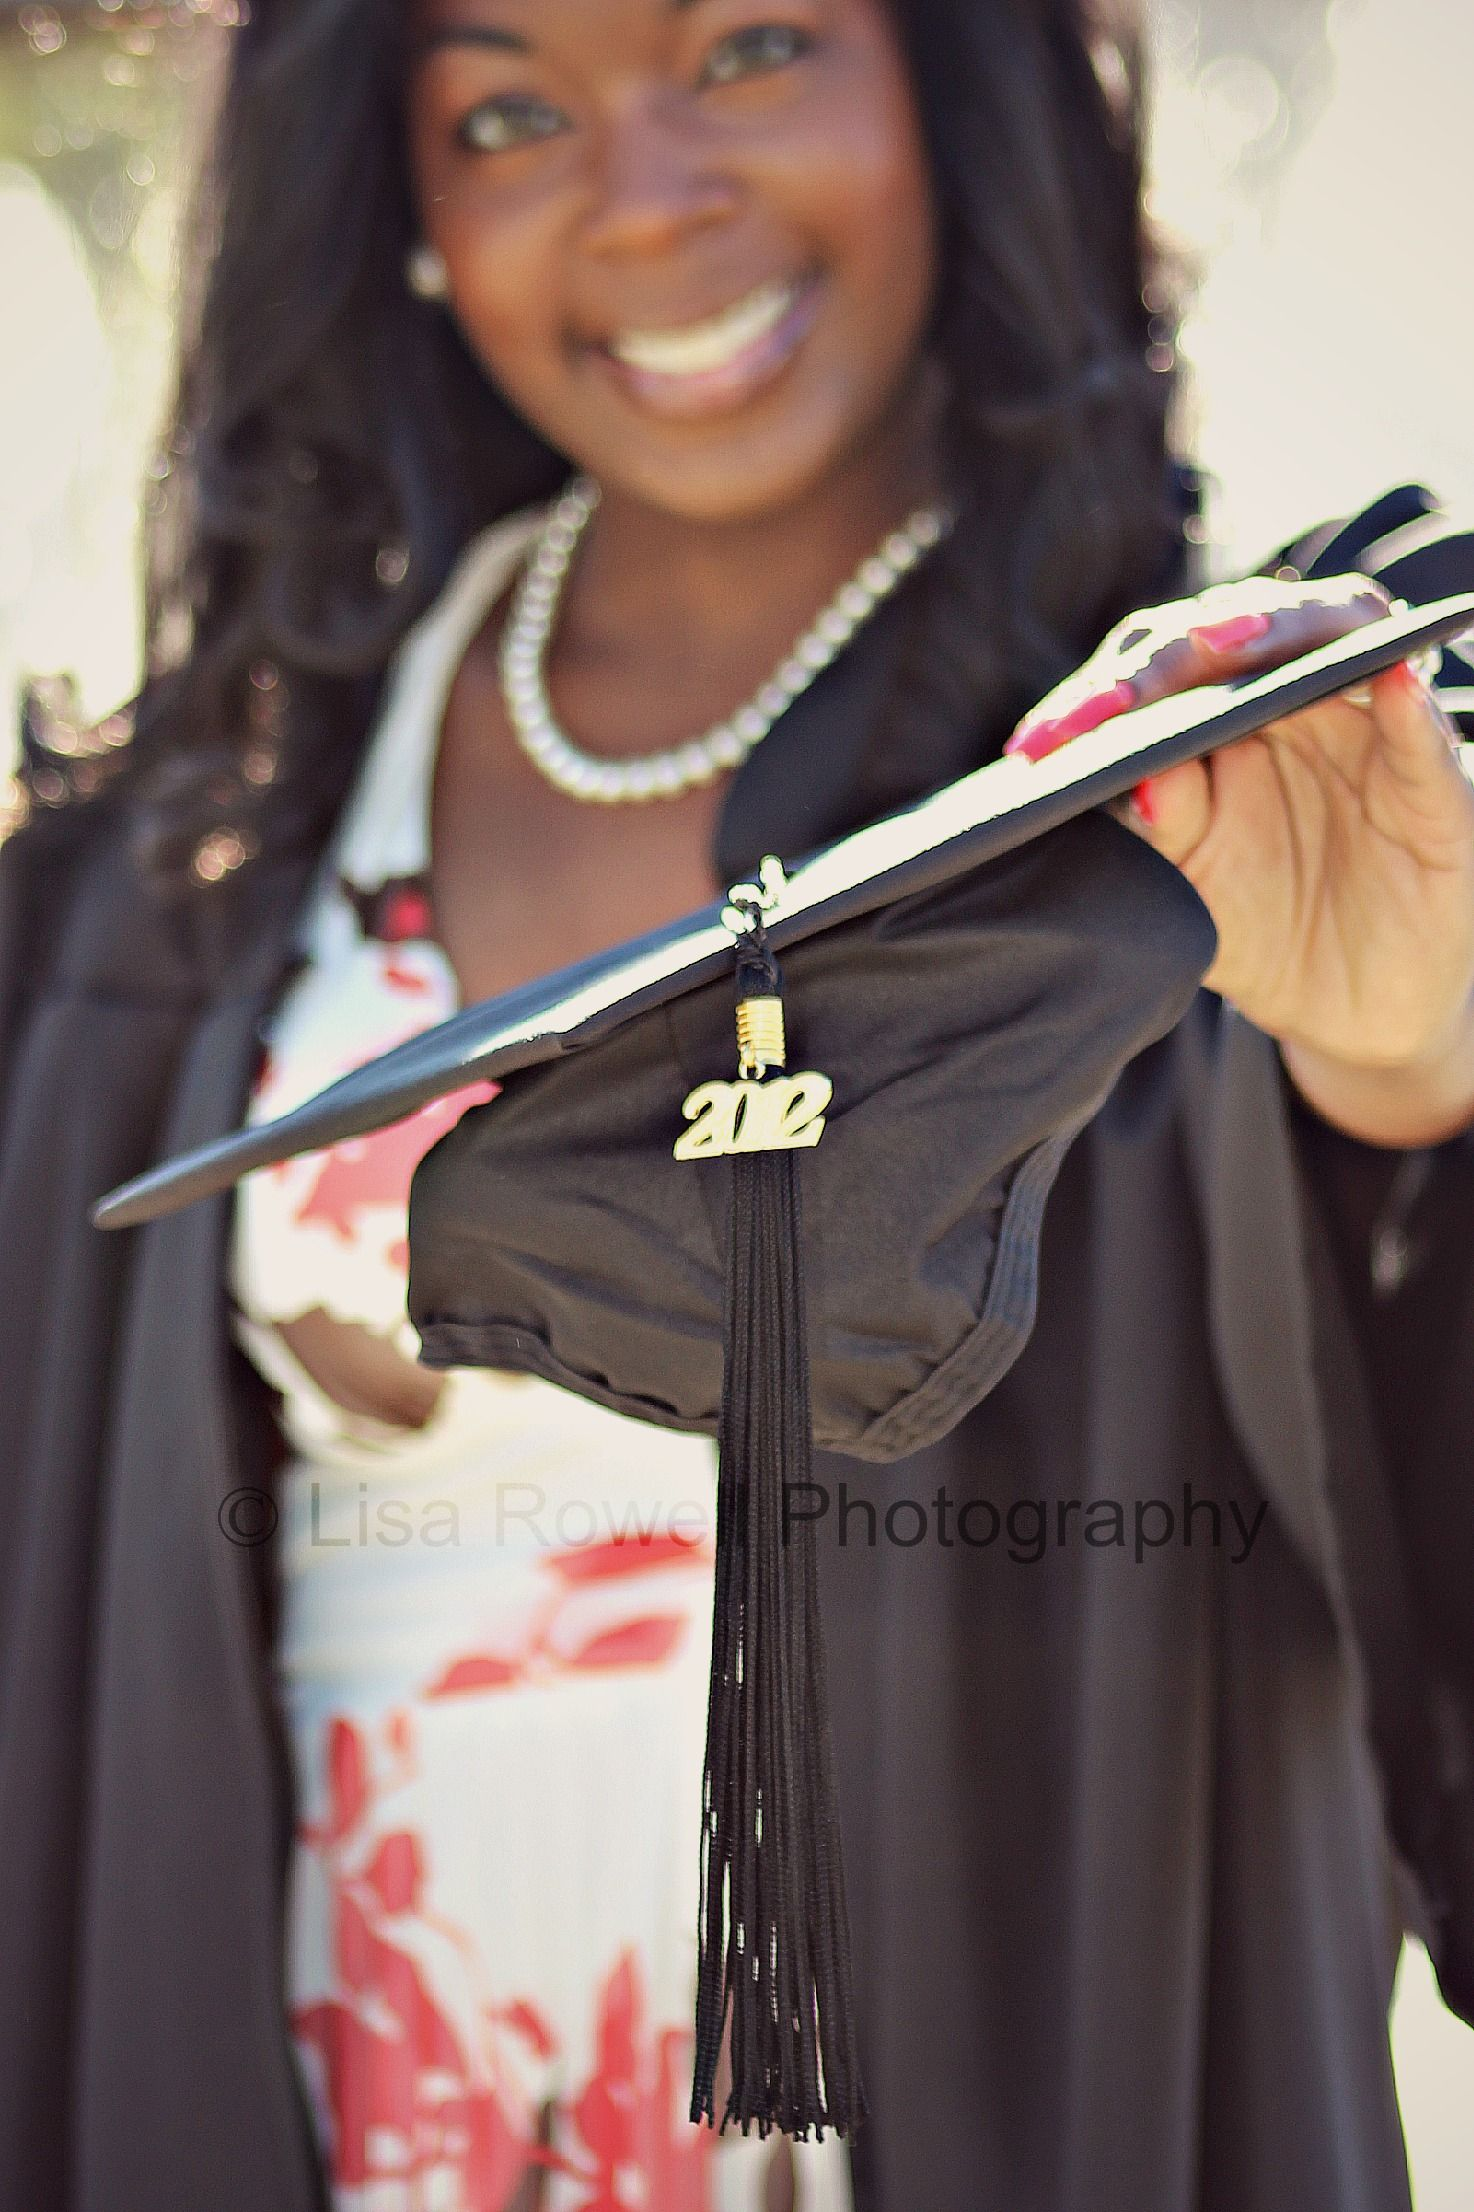 college graduation portraits lisa rowell photography college graduation portraits